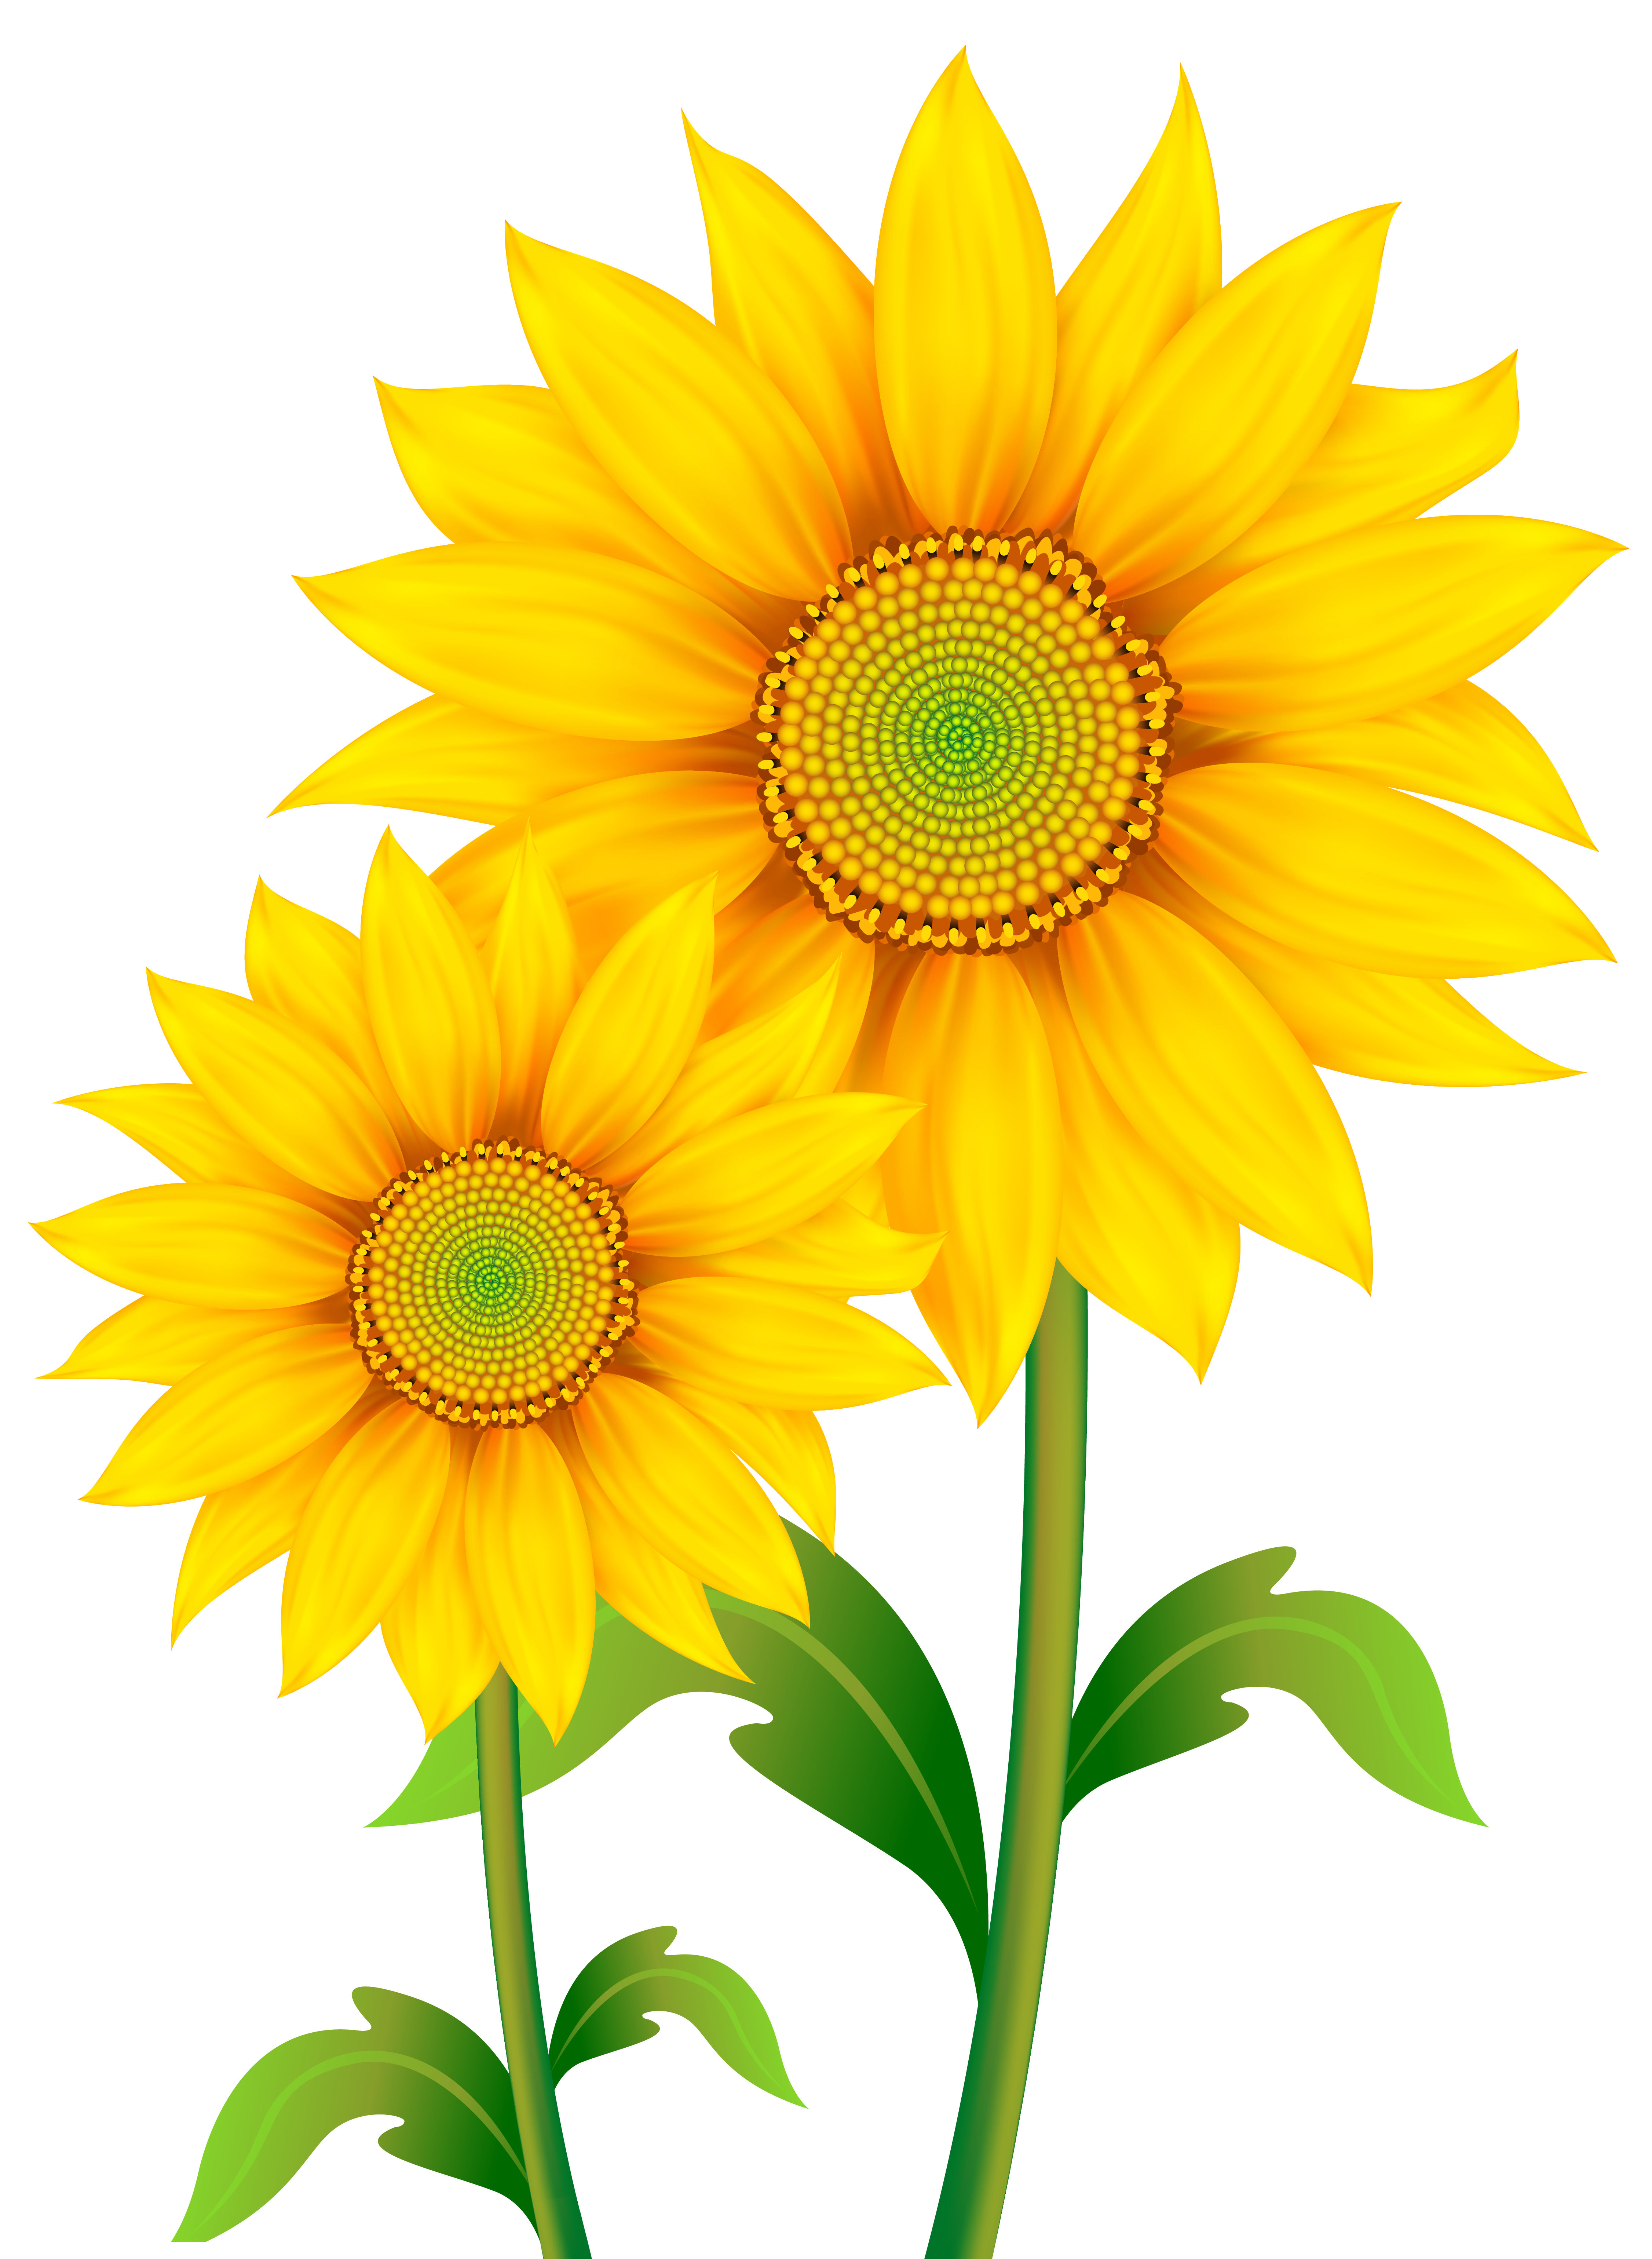 graphic freeuse library Vector sunflower sun flower. Transparent sunflowers clipart png.